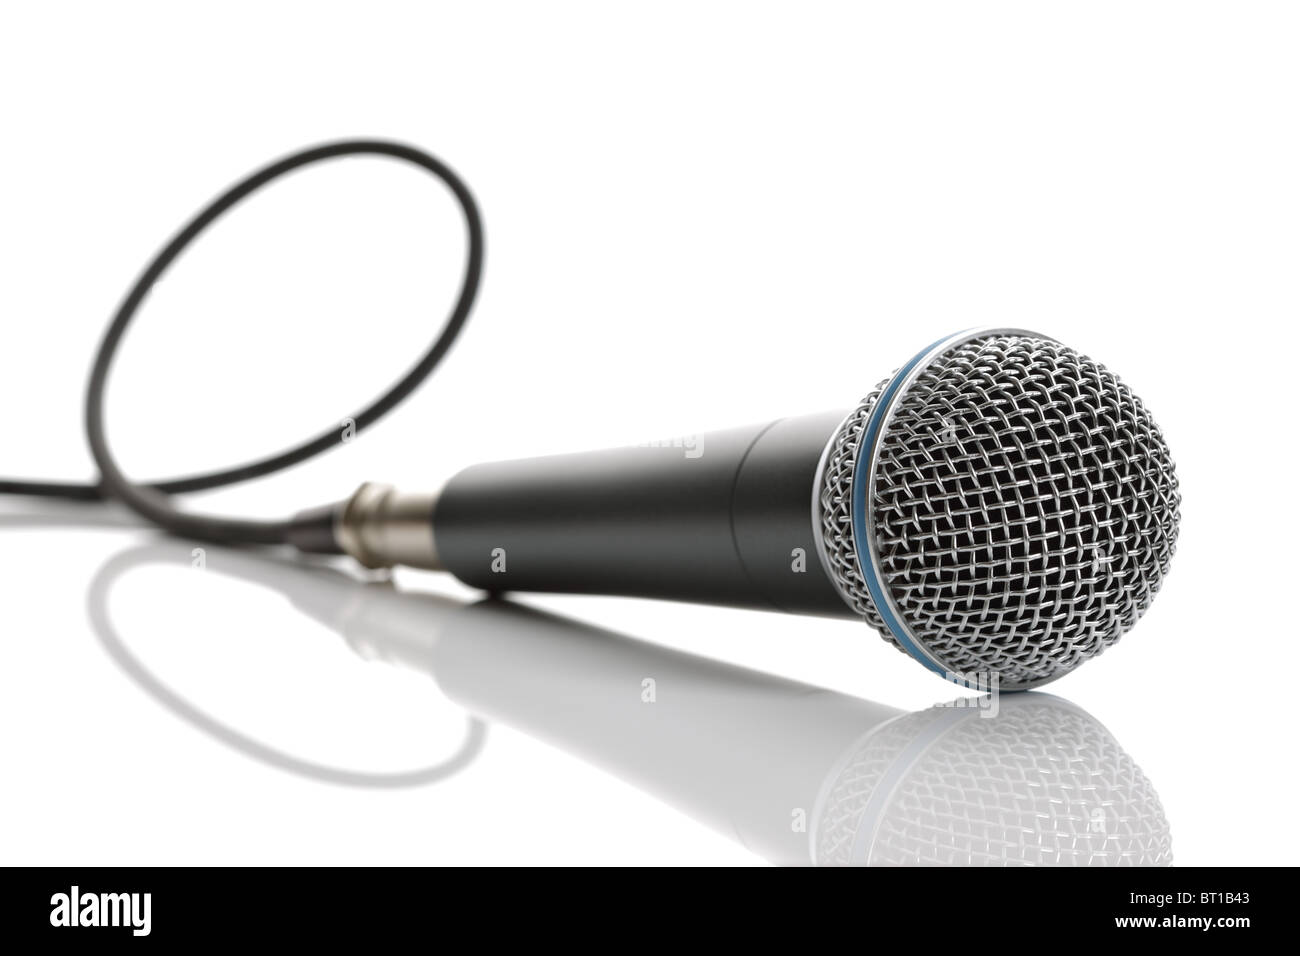 Microphone with cable isolated on white background - Stock Image